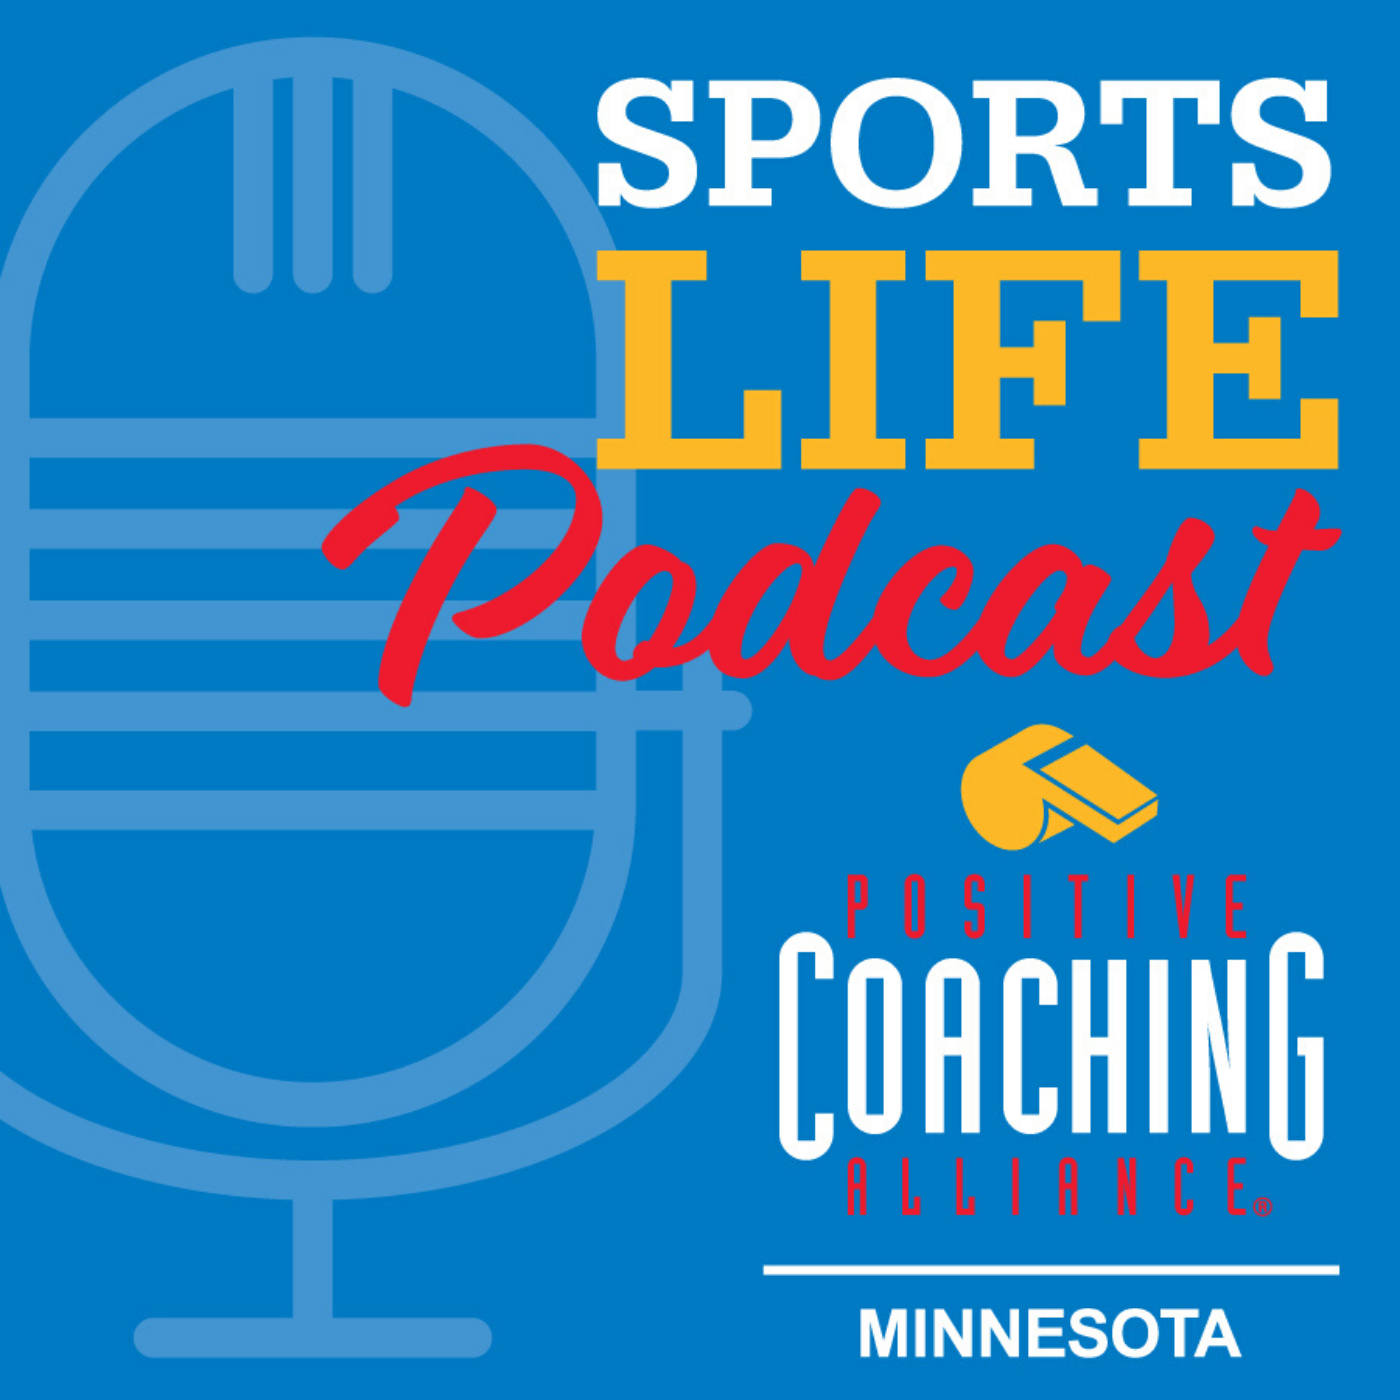 Ep 16: Positive Coaching Alliance-Minnesota Executive Director Troy Pearson on Navigating COVID-19 as a Non-Profit and How PCA Is Still Teaching Kids and Coaches Despite Canceled Seasons